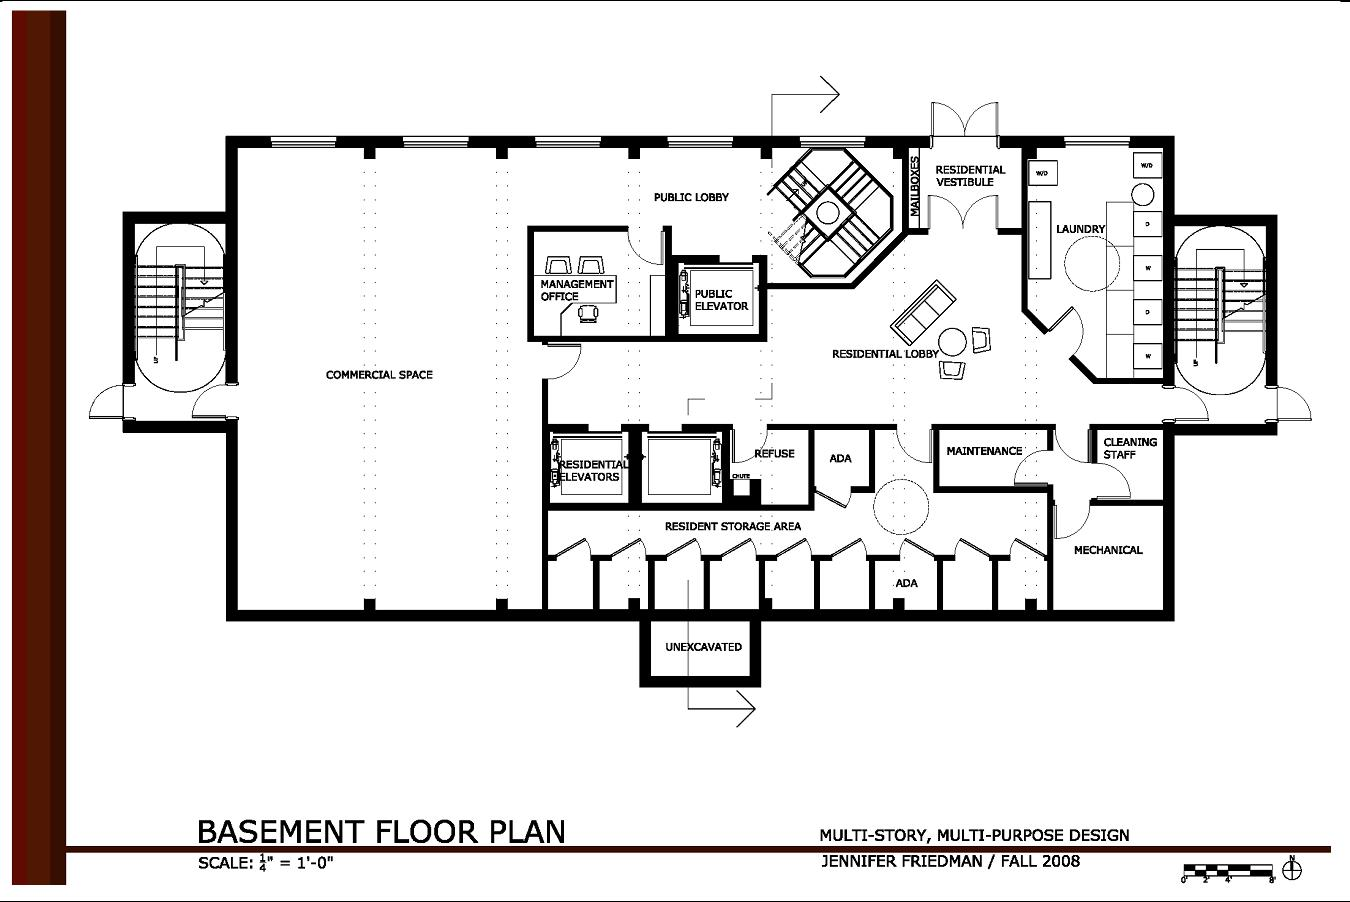 3 storey building apartment design joy studio design 4 storey building floor plans